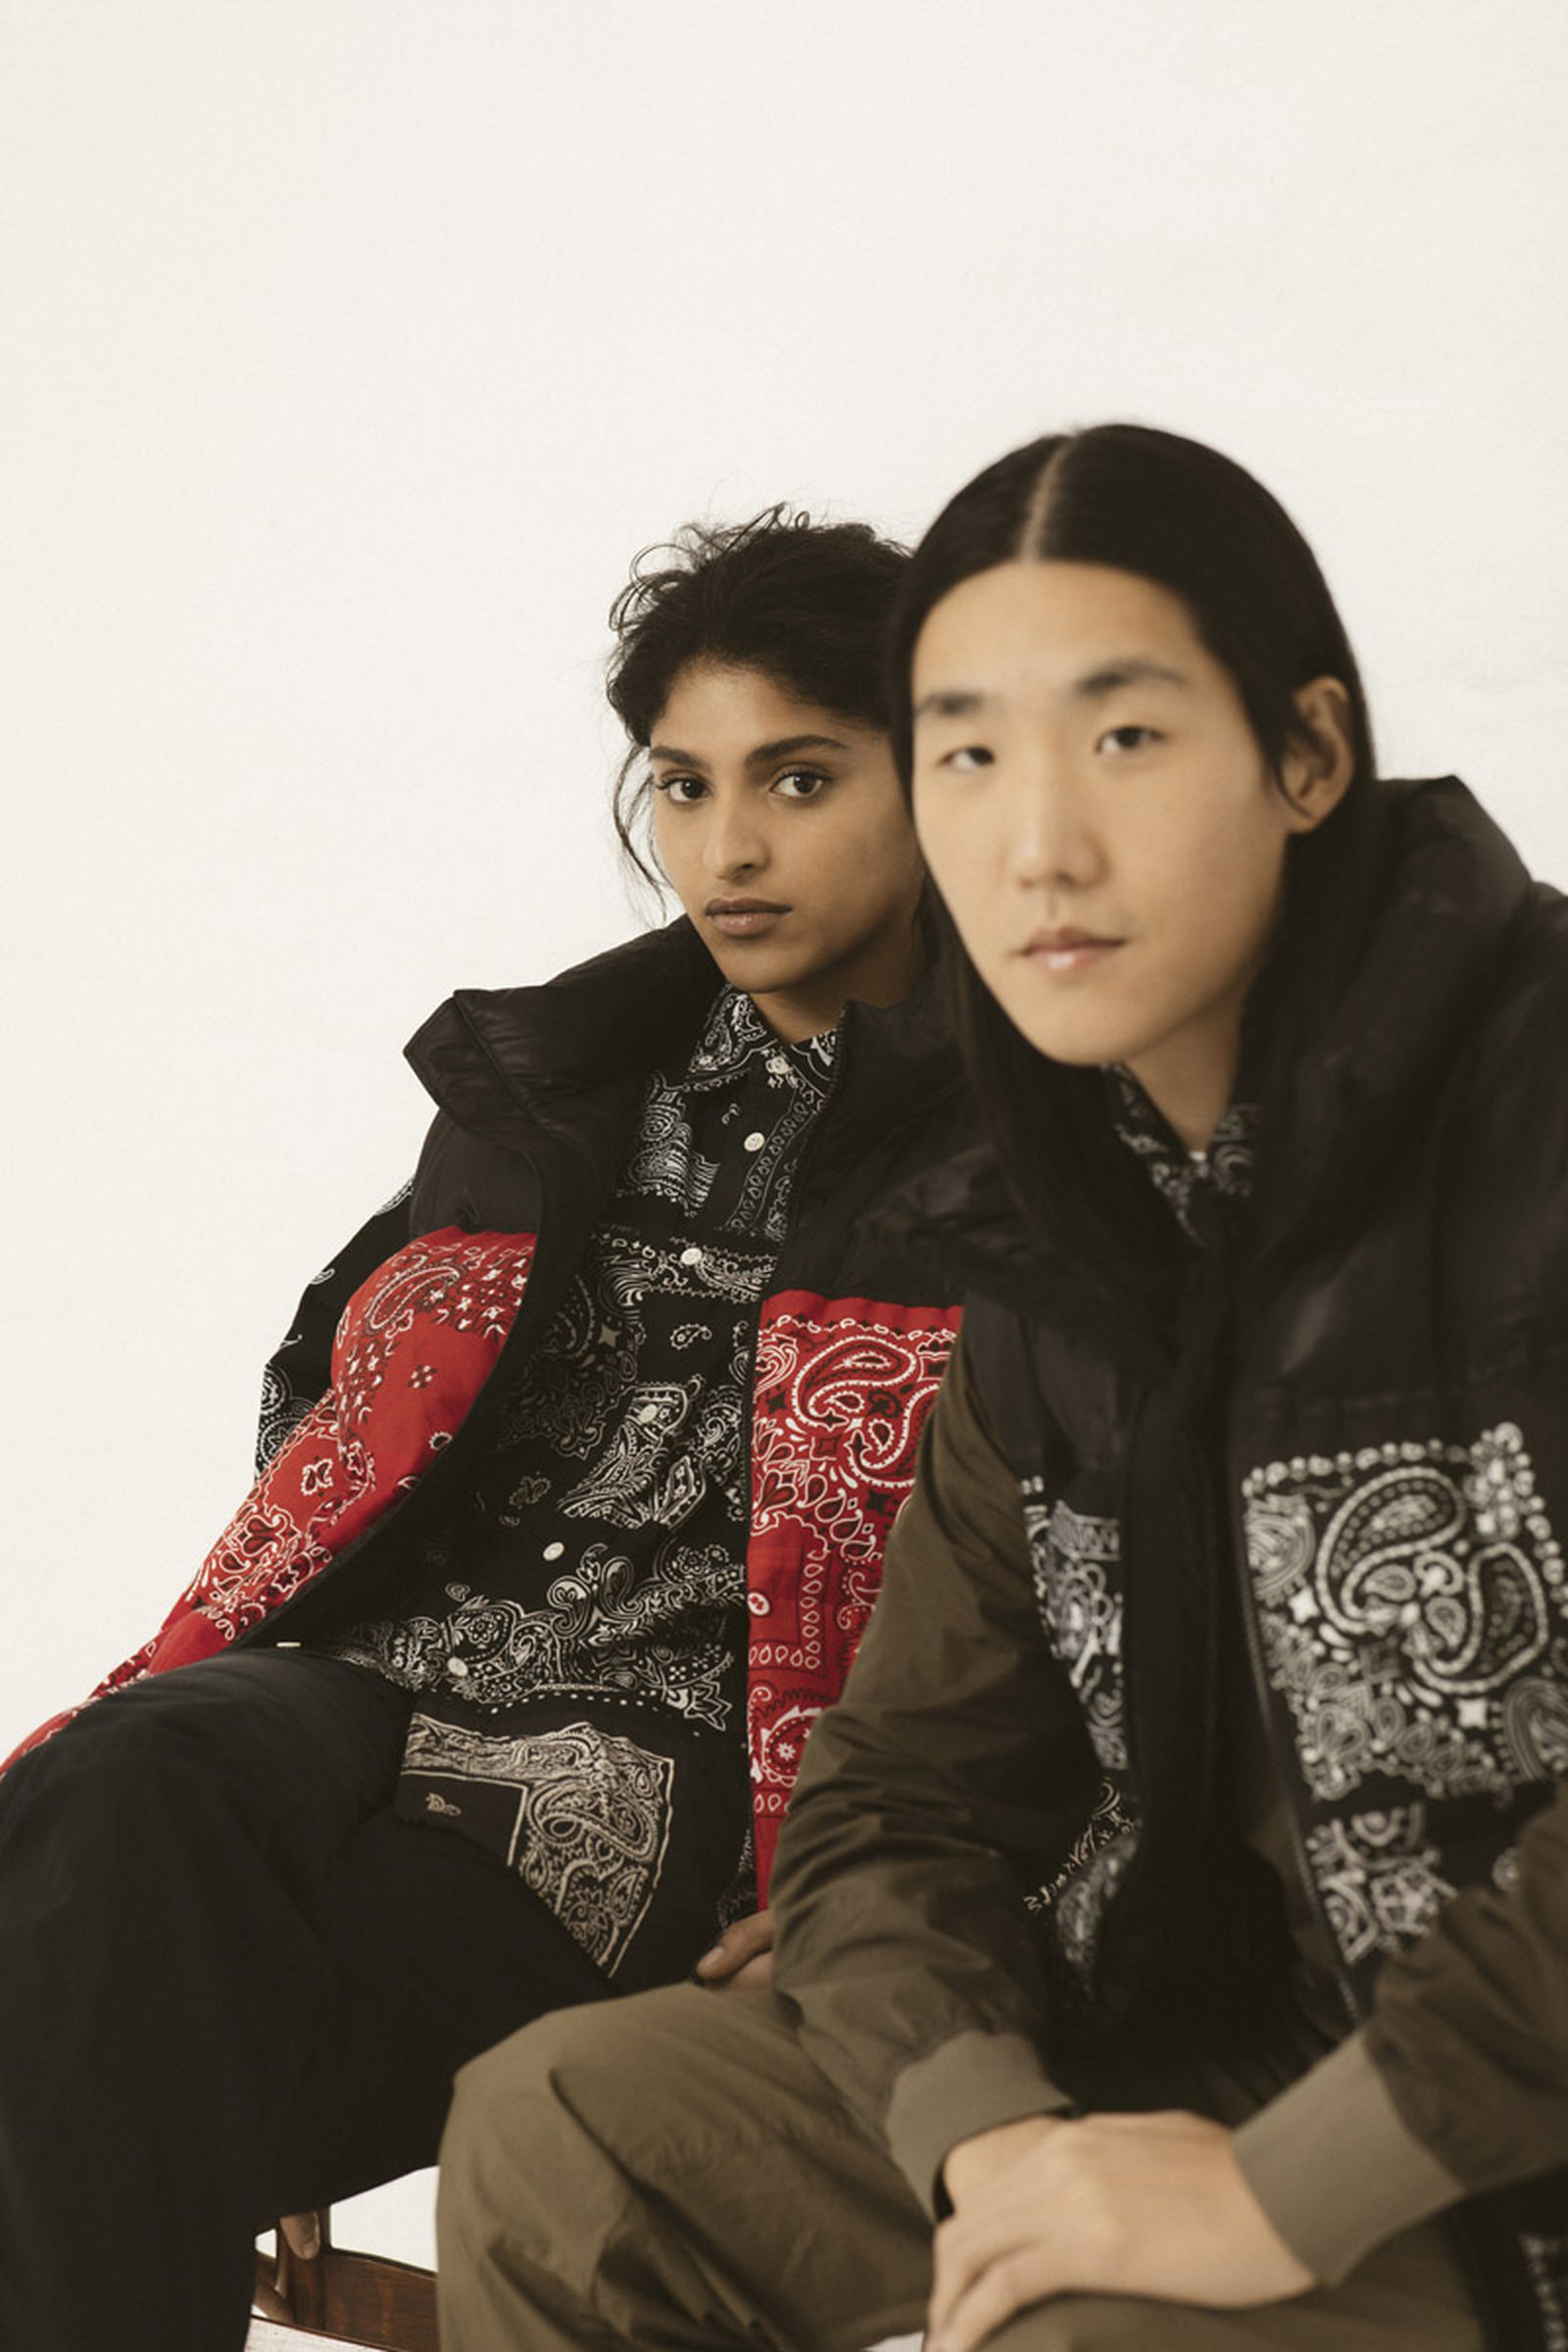 MIYAGIHIDETAKA Bandana Puffer Vest Black, and Red